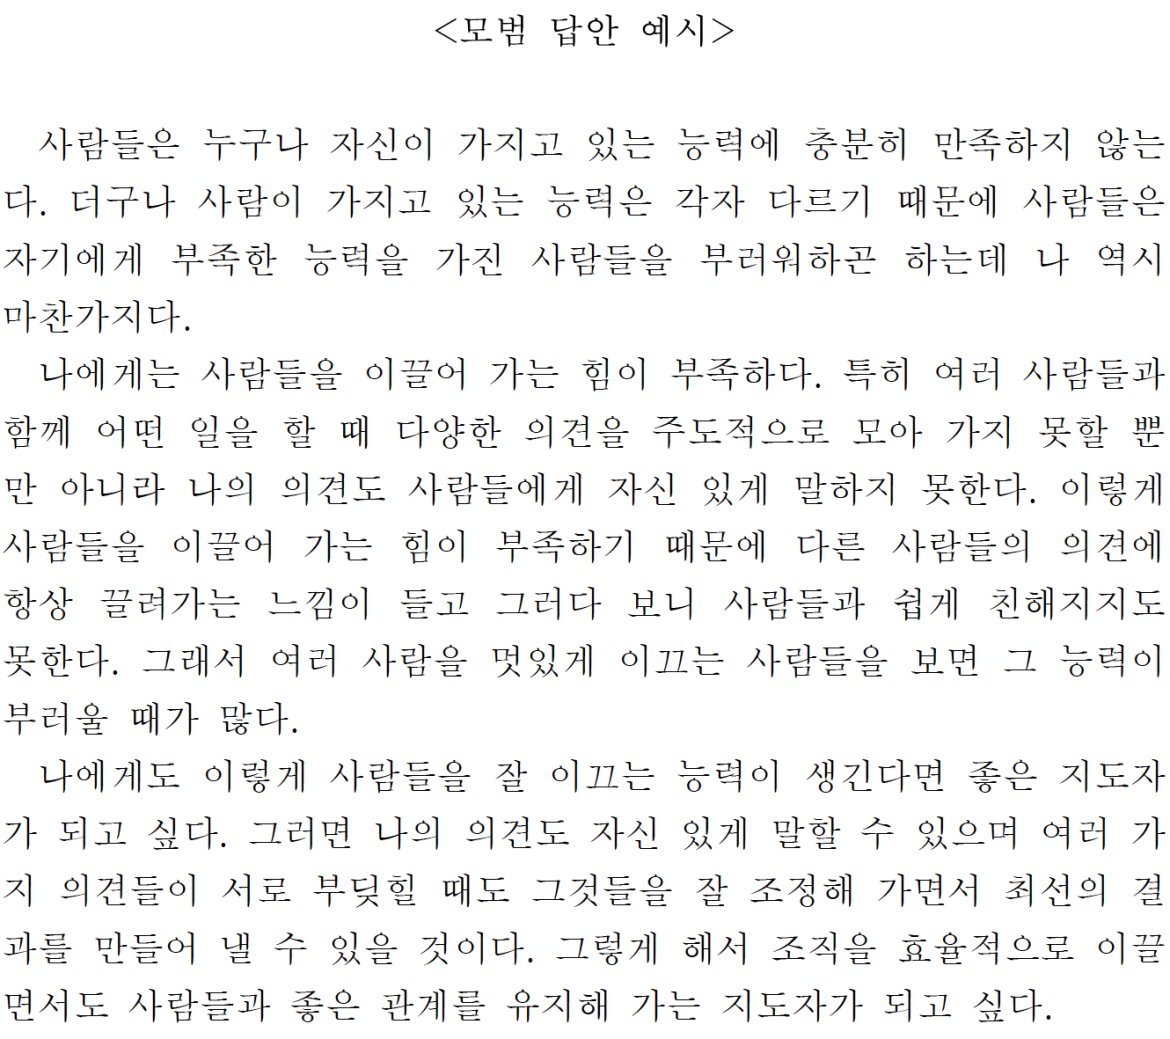 002 Essay Example Korean Stirring Examples About Myself Contest Full